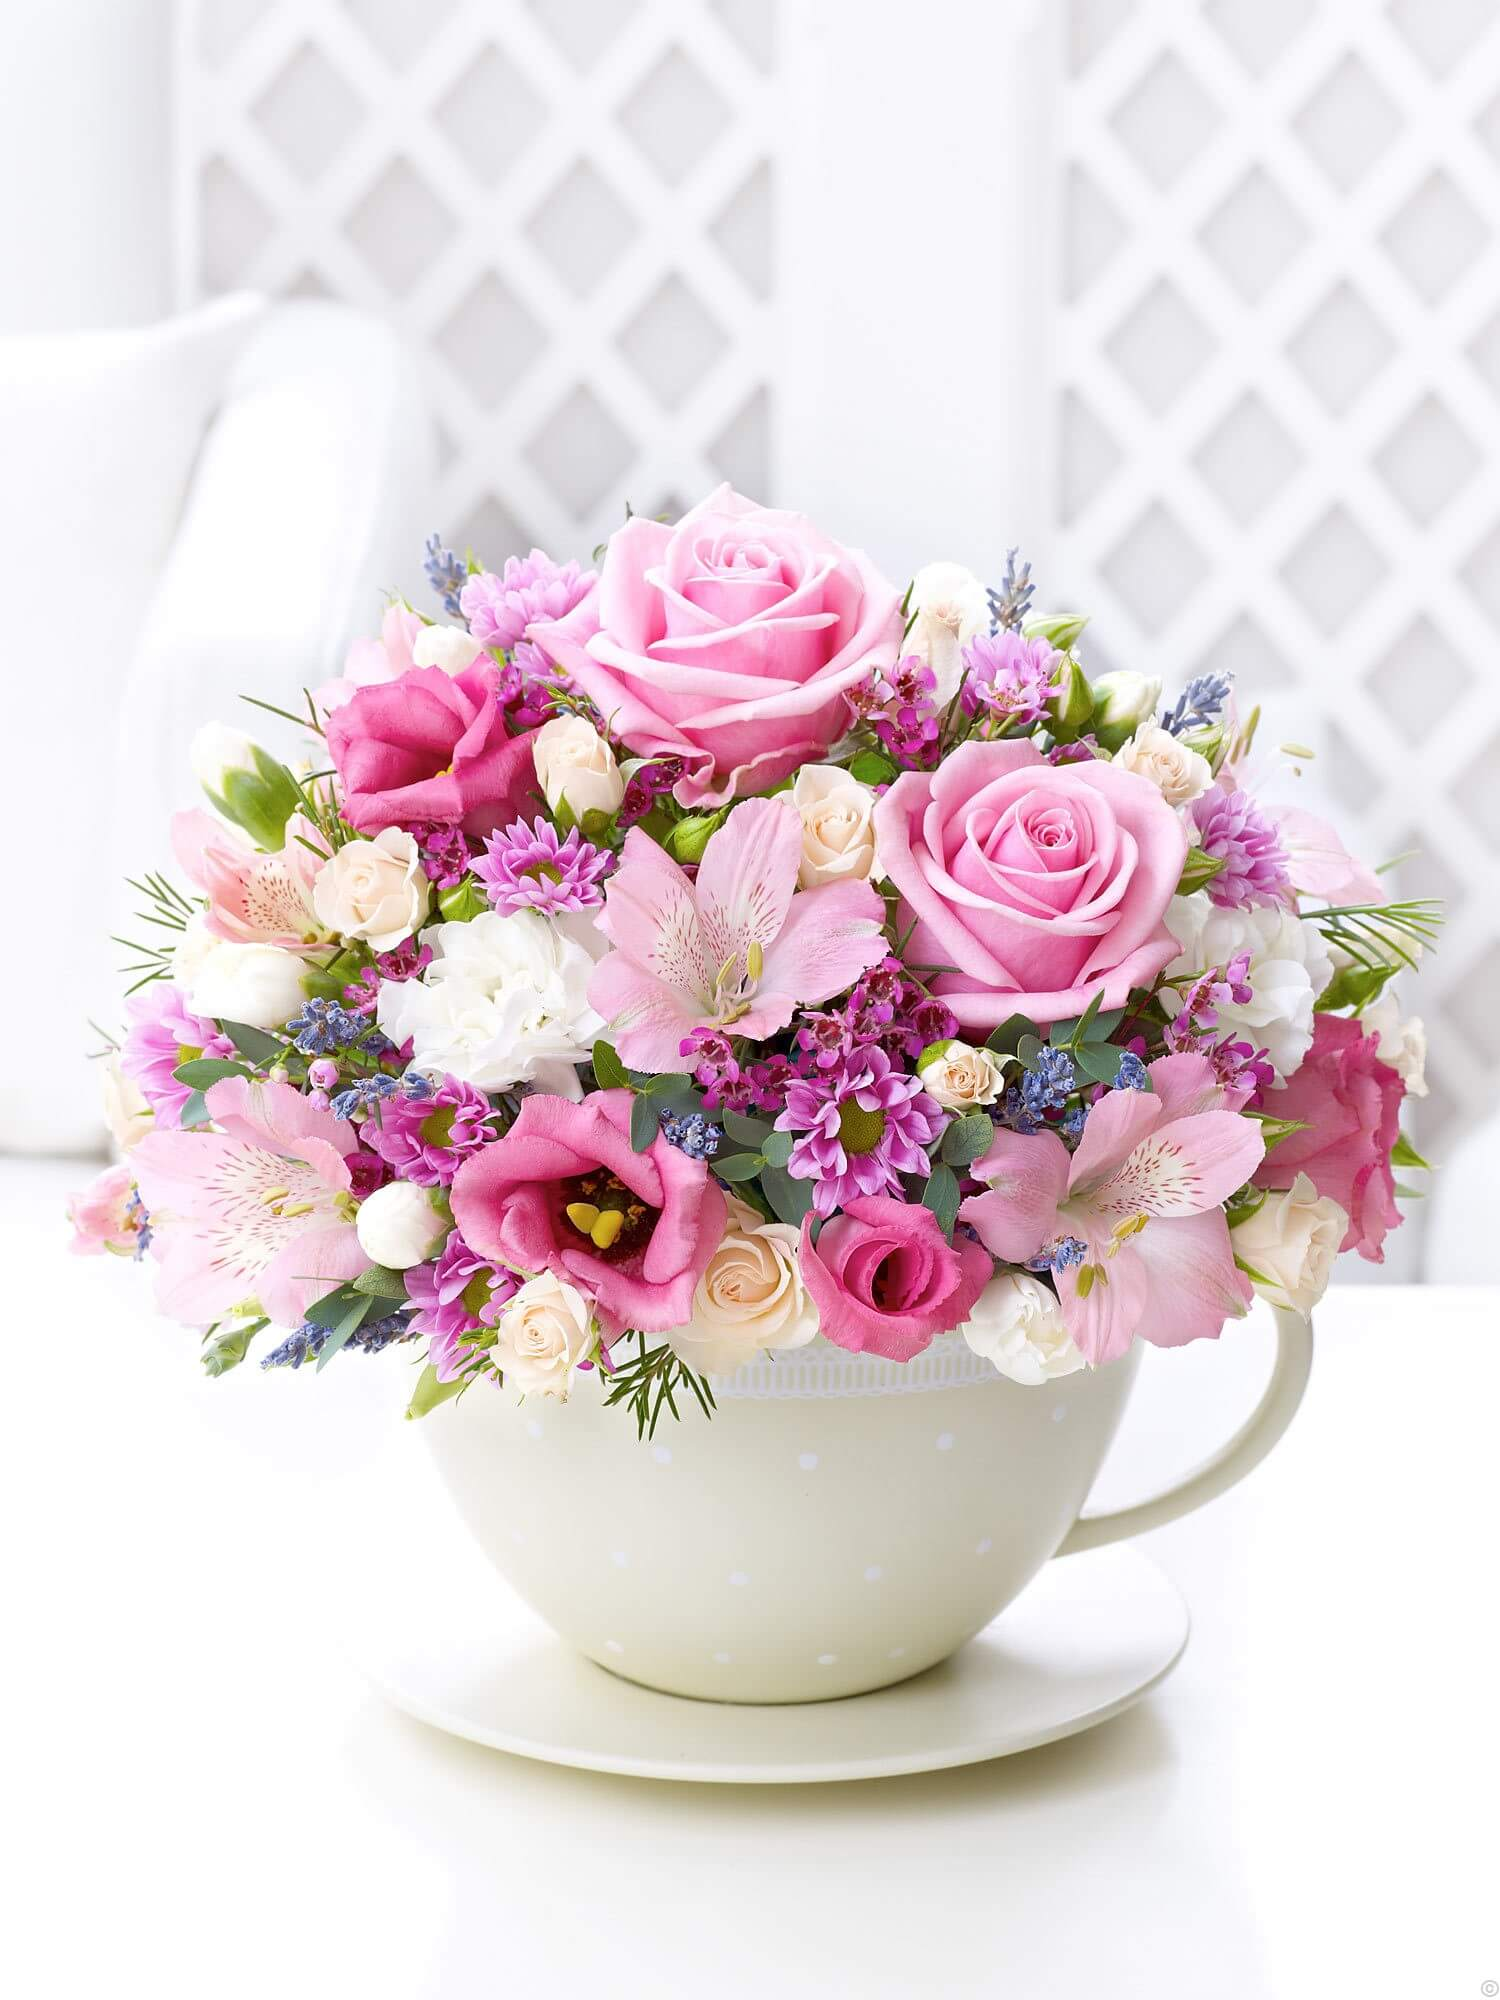 Teacup of Roses, Mums, and Austrolmaria